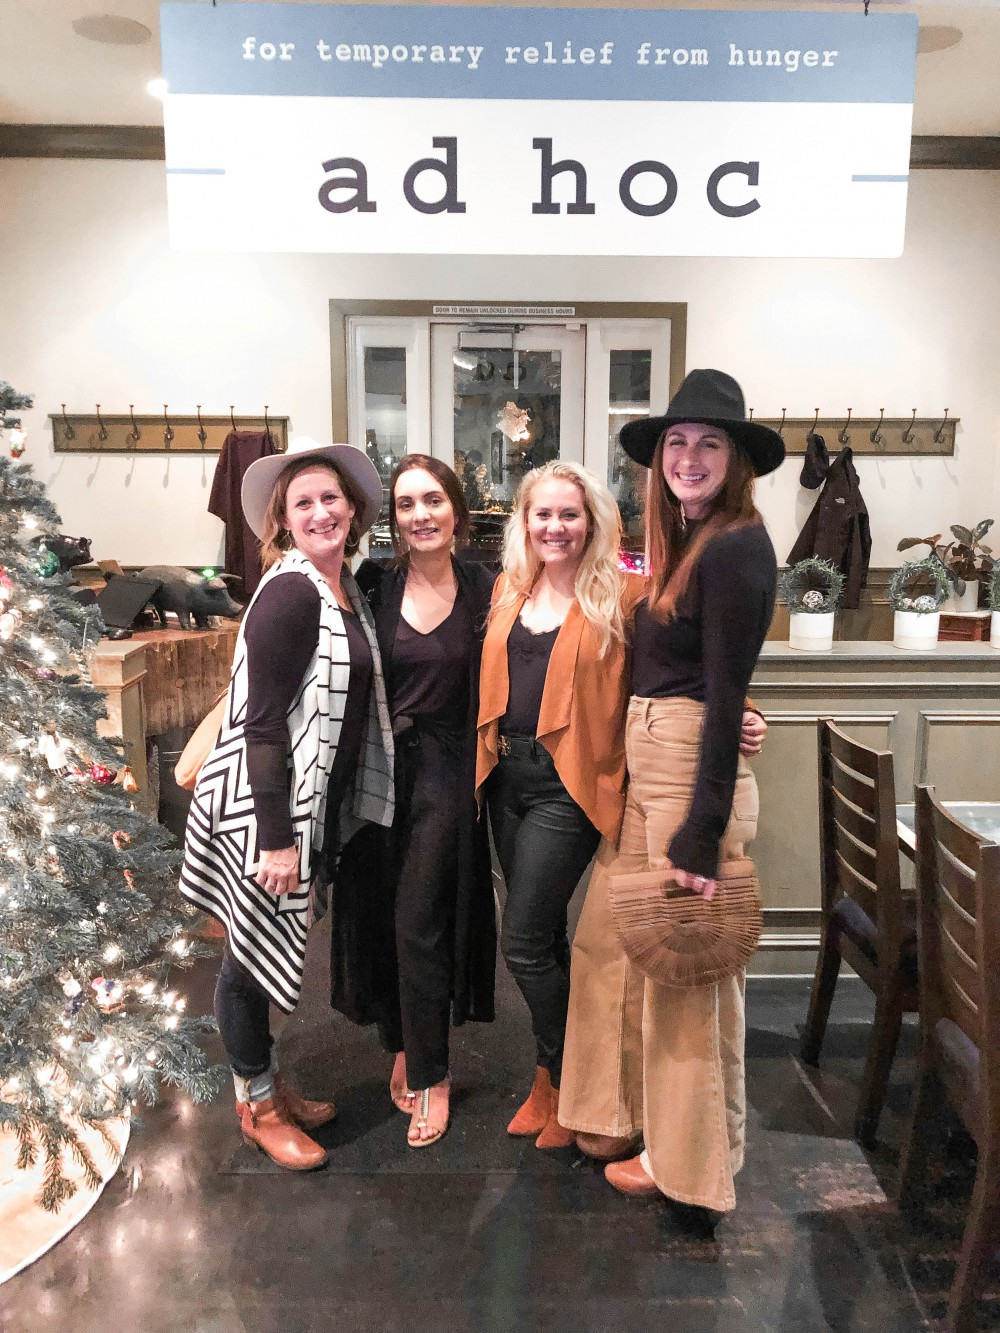 Wine Tasting and Foodie Trip Dining at Ad Hoc in Yountville. Click on the photo to read the post! | Have Need Want #winecountry #yountville #foodietrip #winetasting #MichelinStarDining  #MichelinStarRestaurant #AdHoc #ThomasKeller